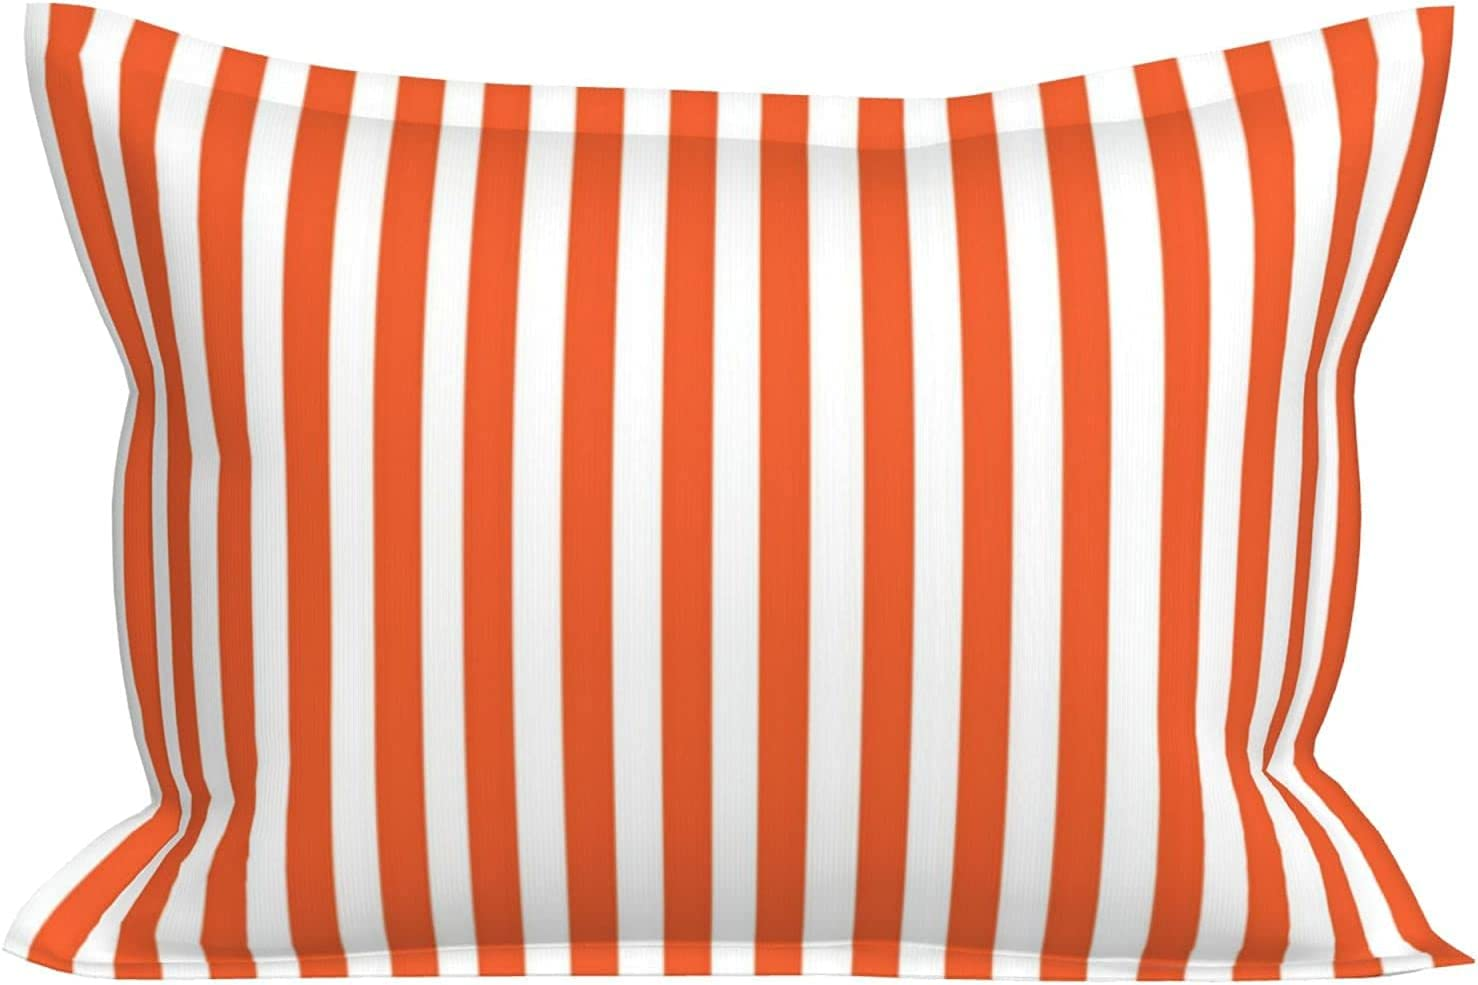 huaxian Pillowcase for Hair and St Skin Max 55% OFF Orange Striped White Sales sale